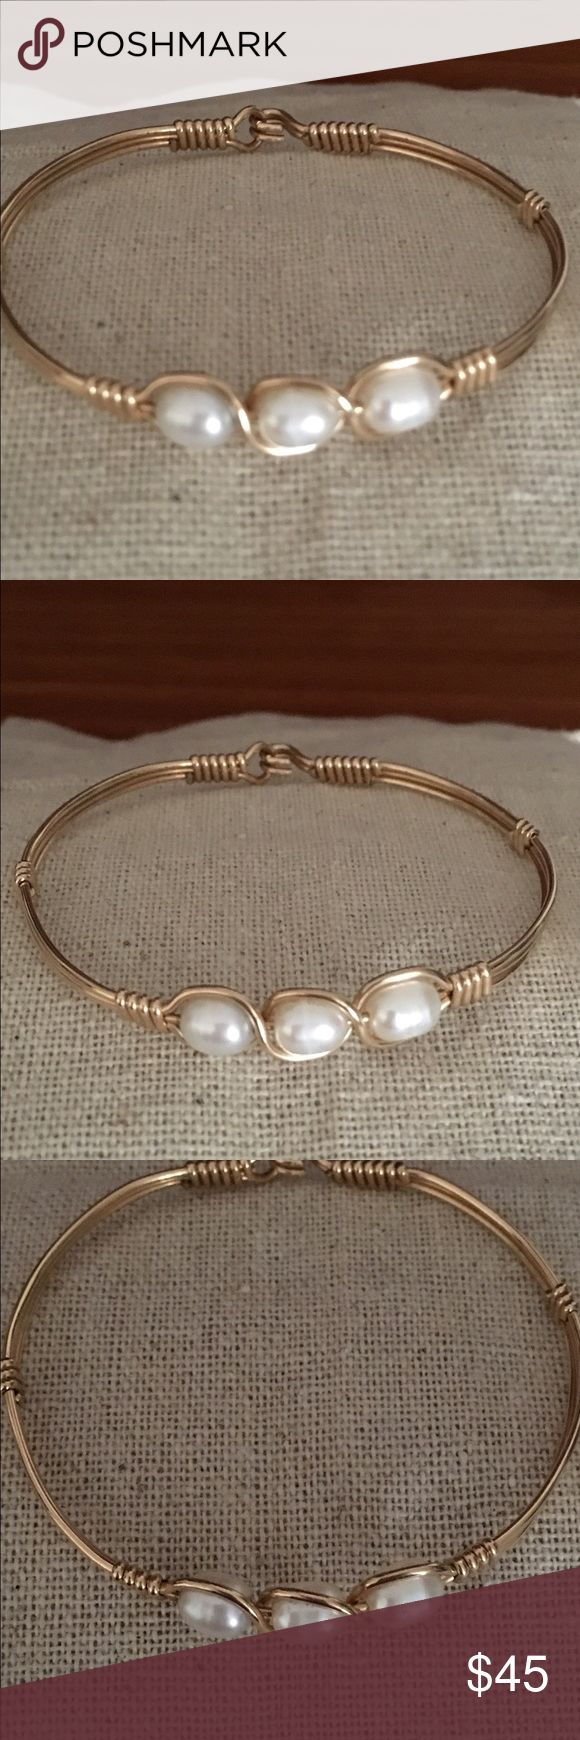 "Ronaldo Bracelet ""Waverly"". No trading This is the Waverly bracelet. Gold with 3 pearls. This is a small Ronaldo. Good condition. Ronaldo Jewelry Bracelets"